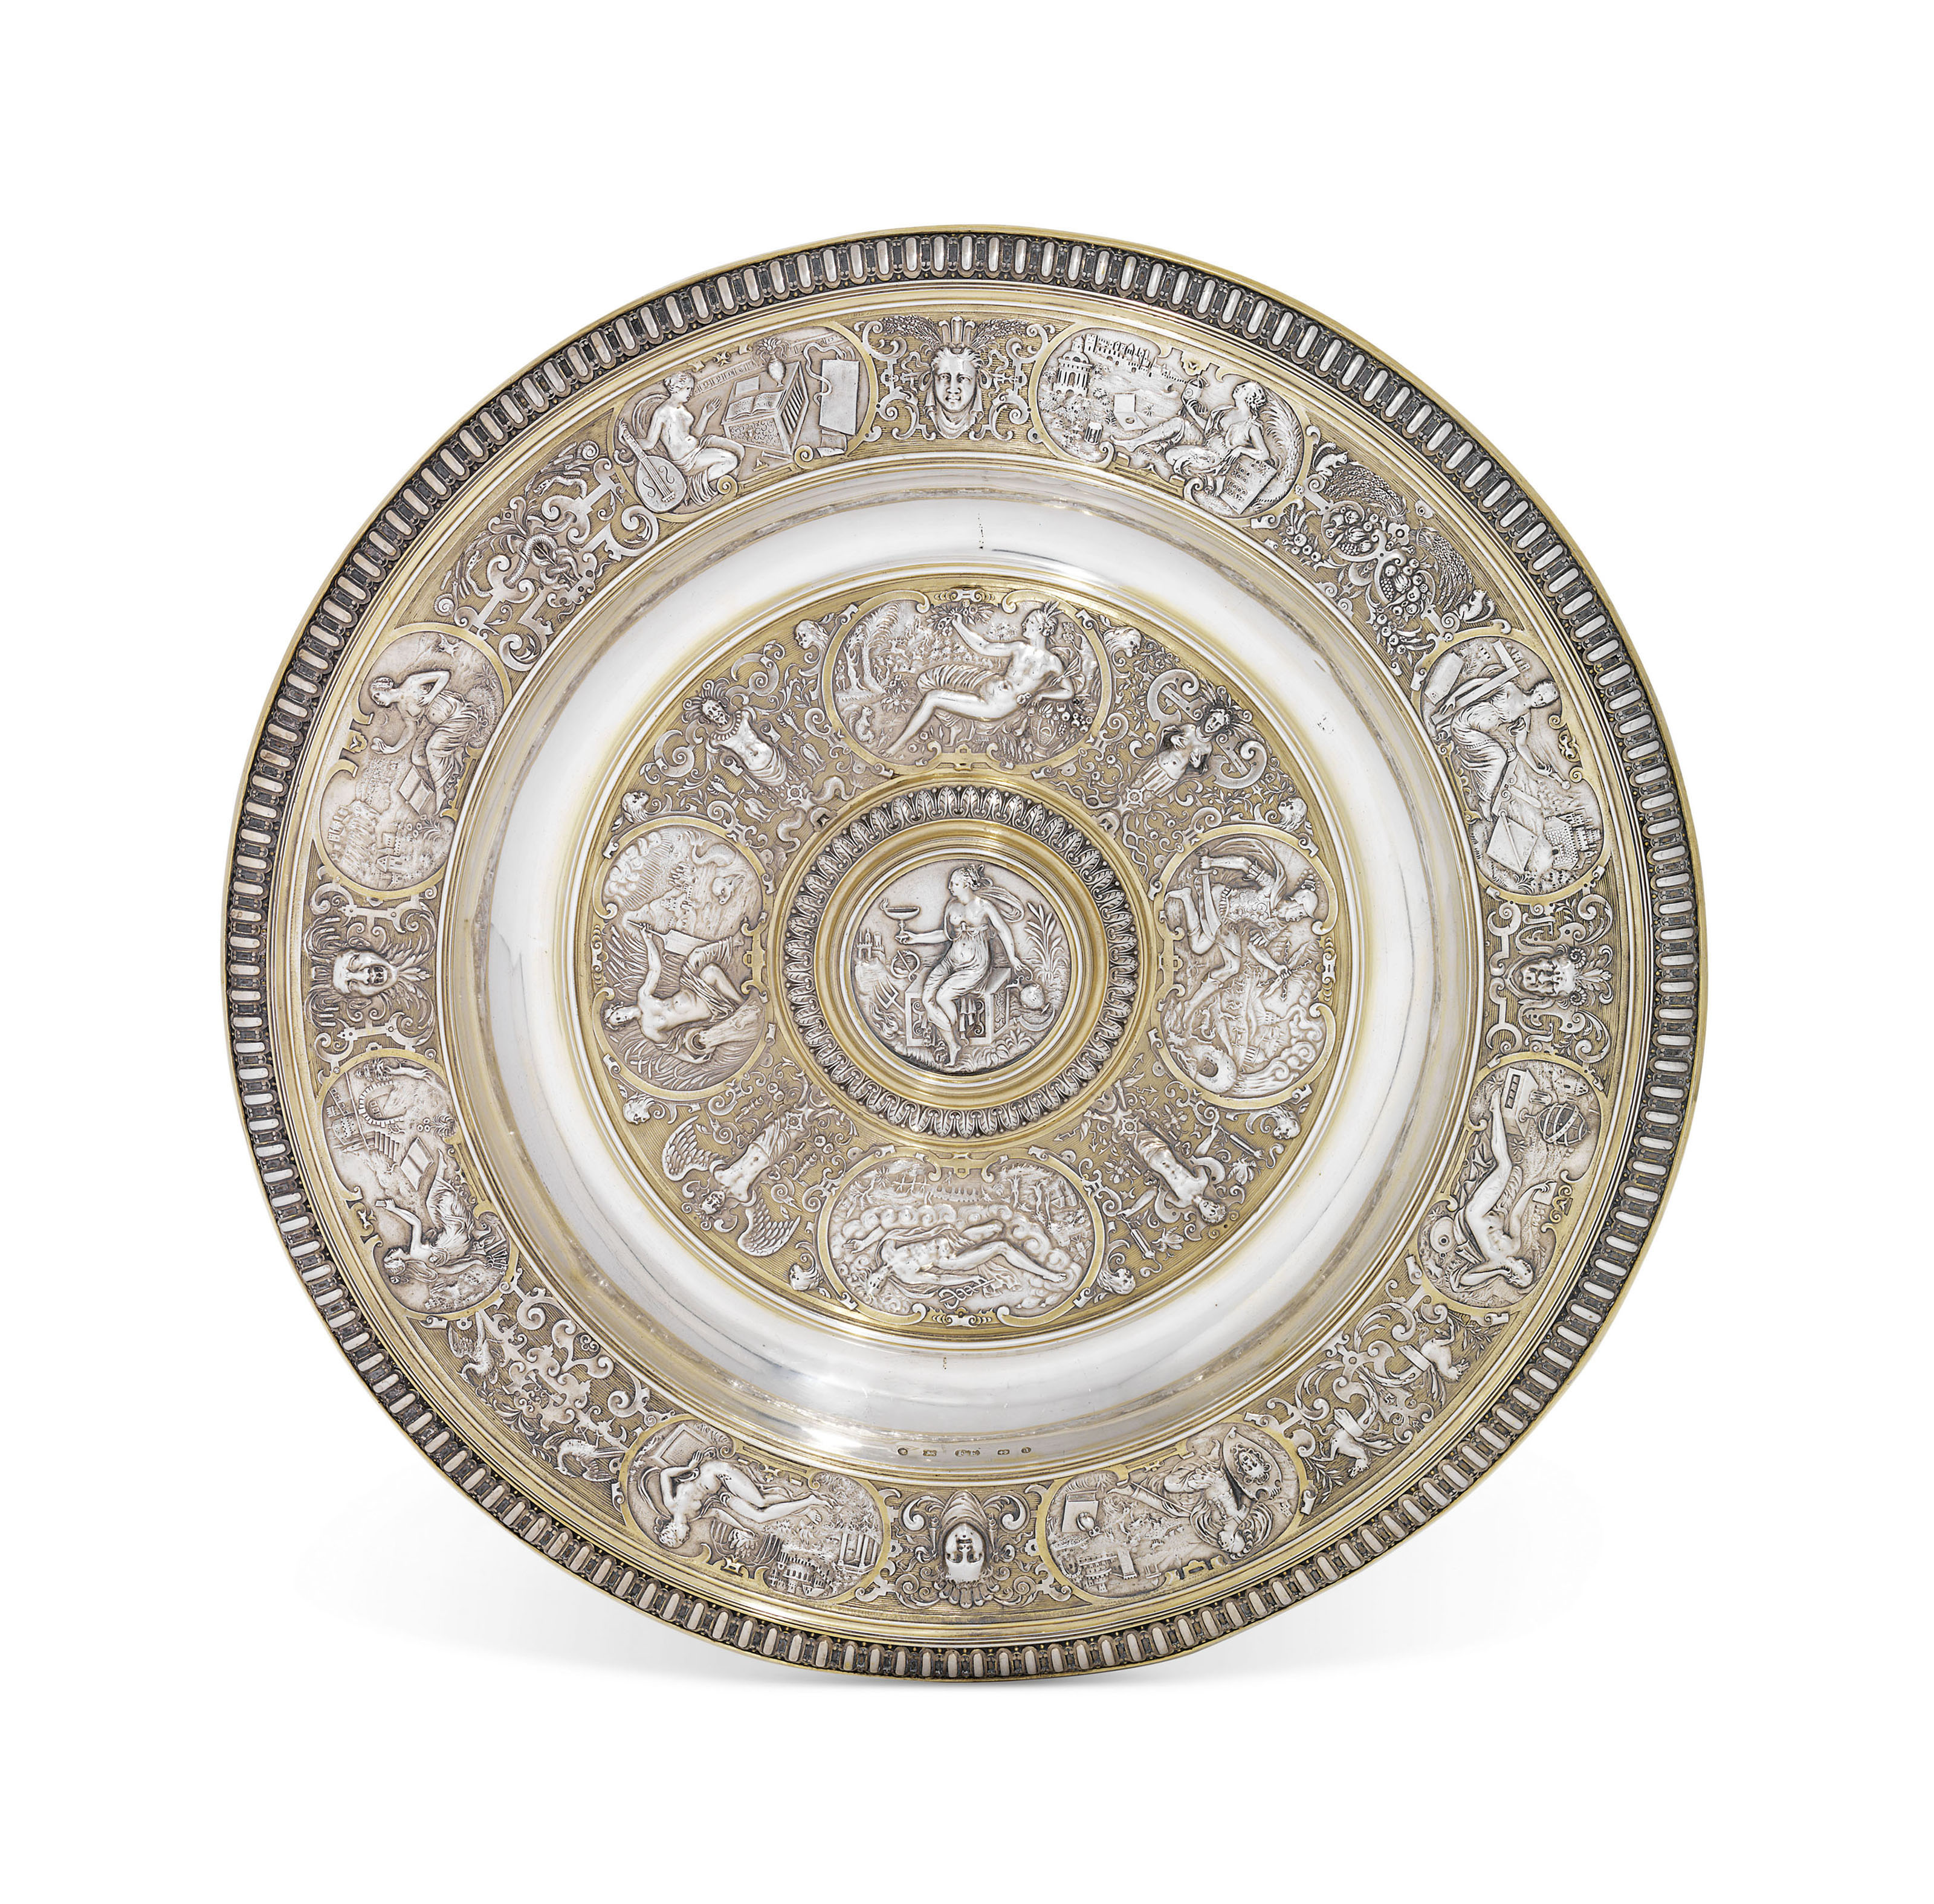 A VICTORIAN PARCEL-GILT SILVER DISH AFTER THE TEMPERANTIA BASIN